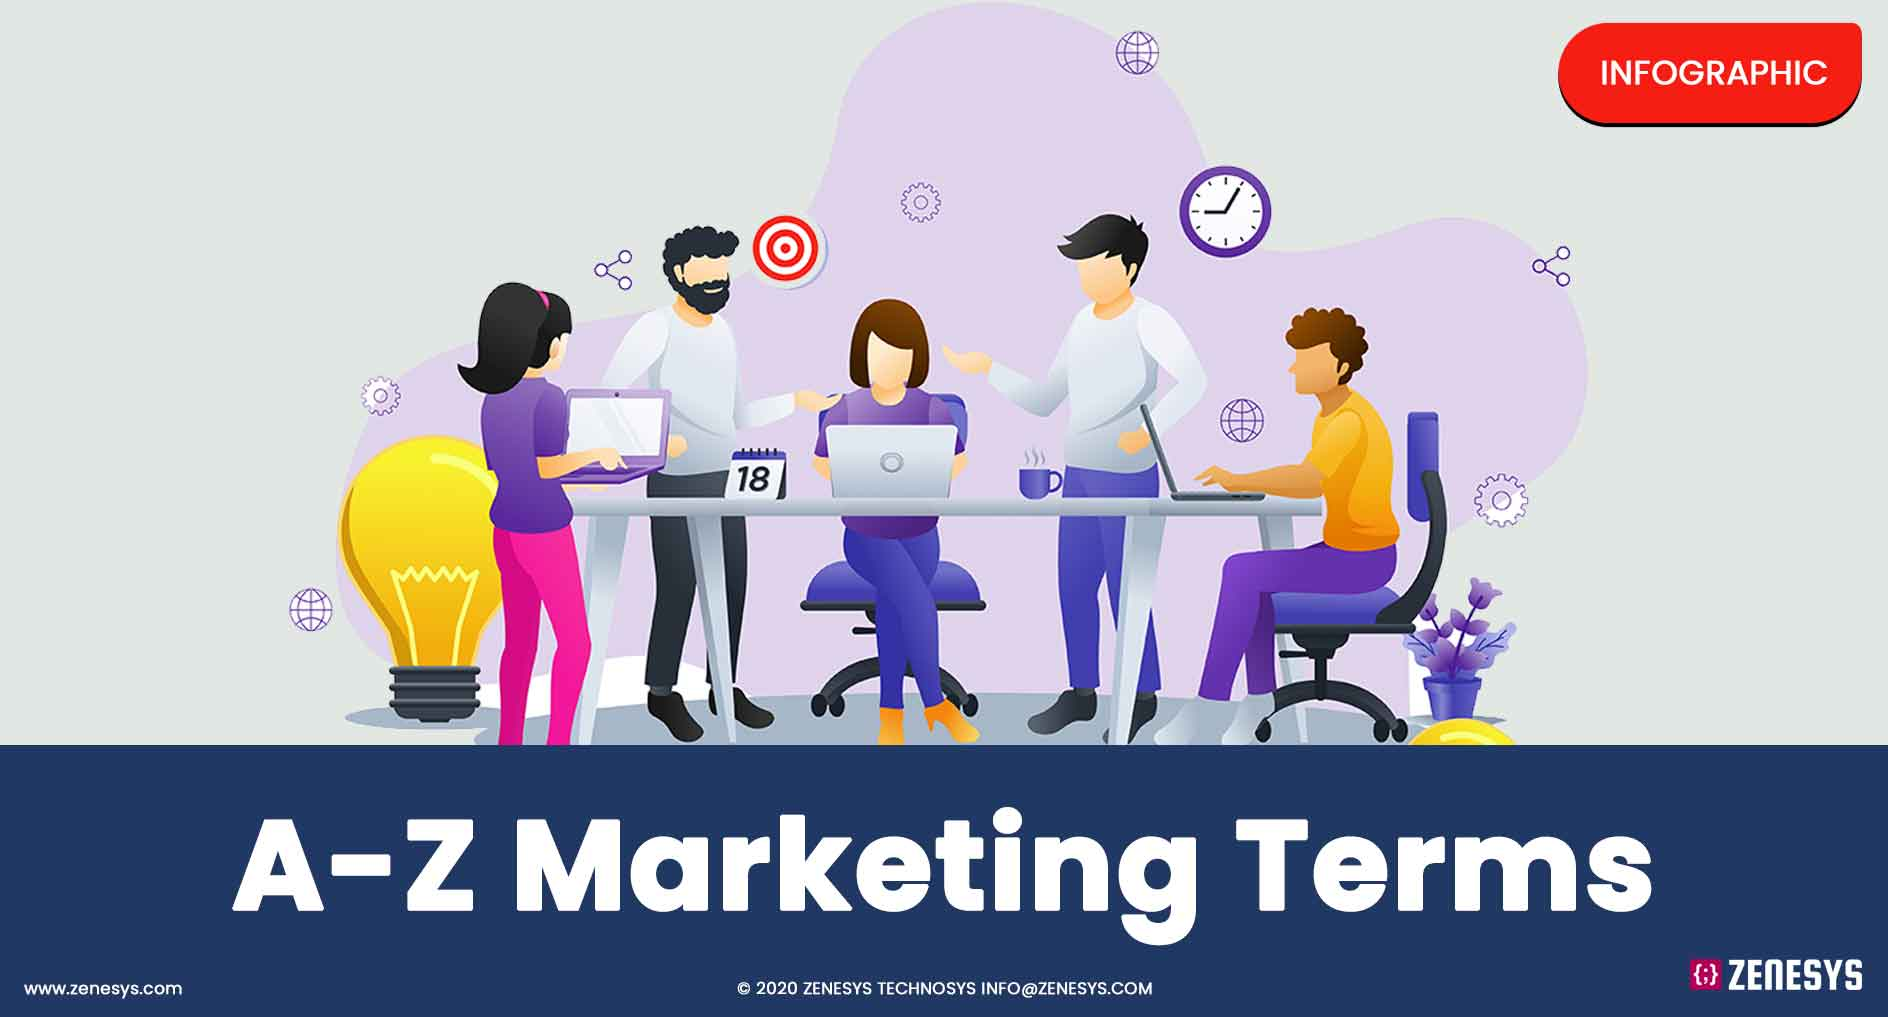 A-Z Marketing Terms - Infographic